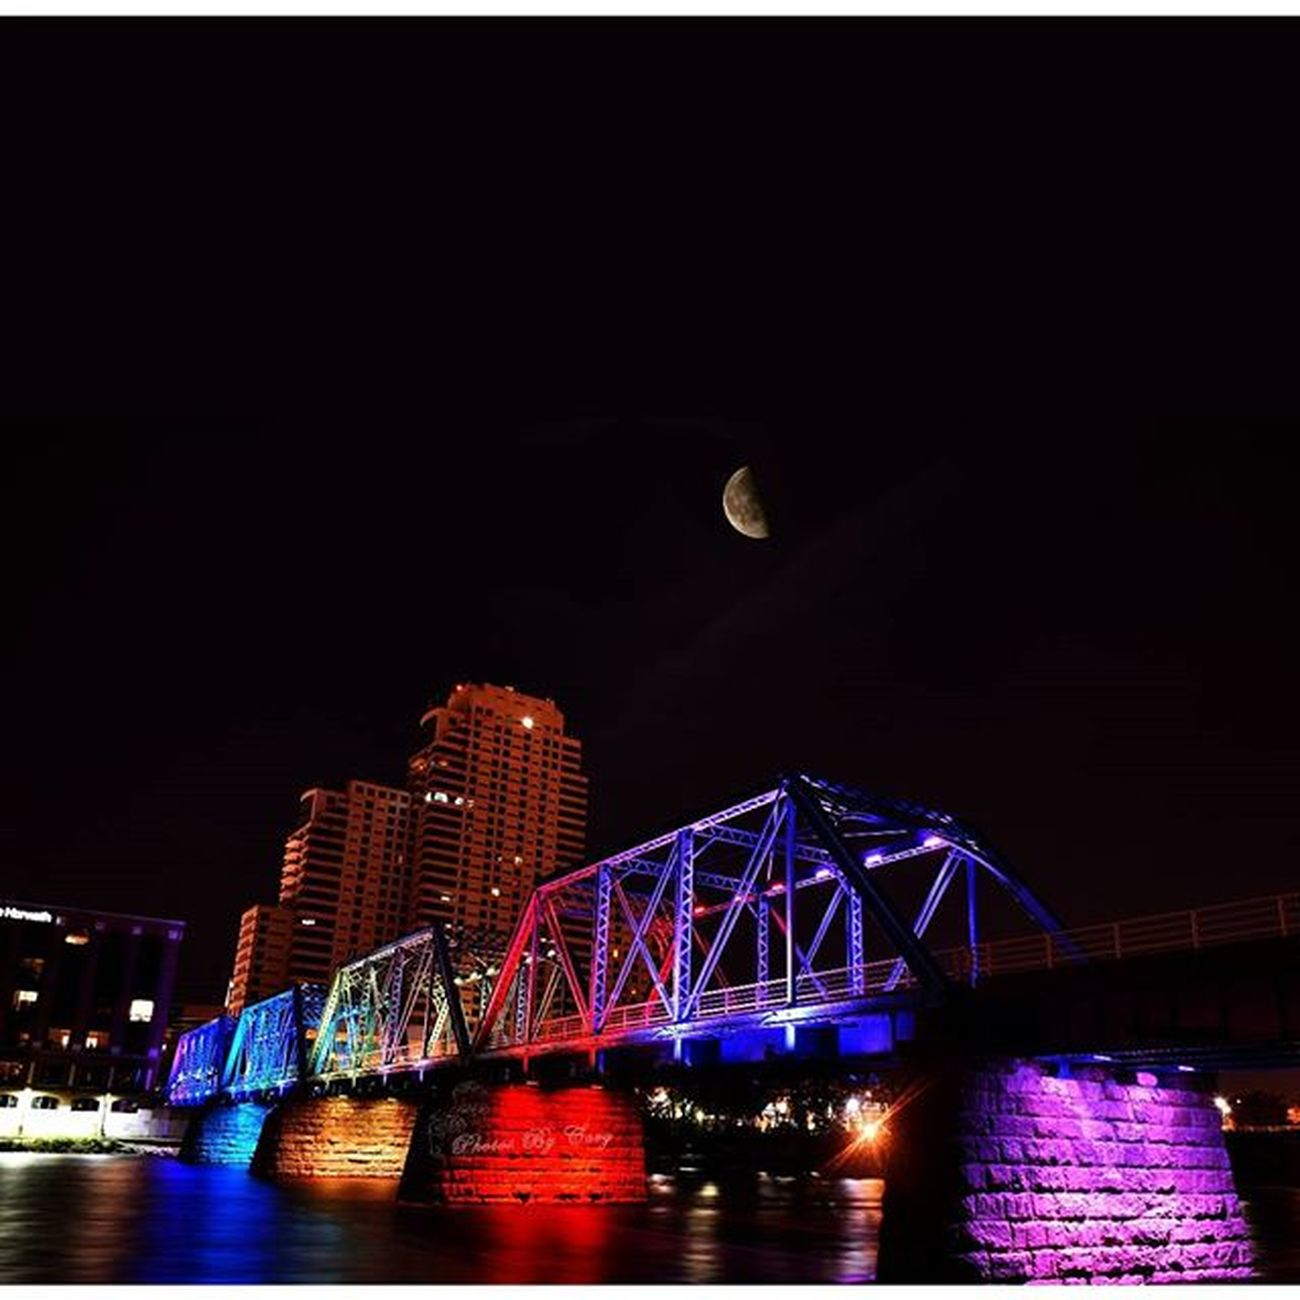 An edit of two photos I took last night. One of the bridge and one of the moon. then I combined them to be more like the way it looked last night. Bluebridge Gr GrandrapidsInstagrammers Arenadistrictgr Puremichigan Photoftheday Lovewins DownTownGR Nightview Grandrapids